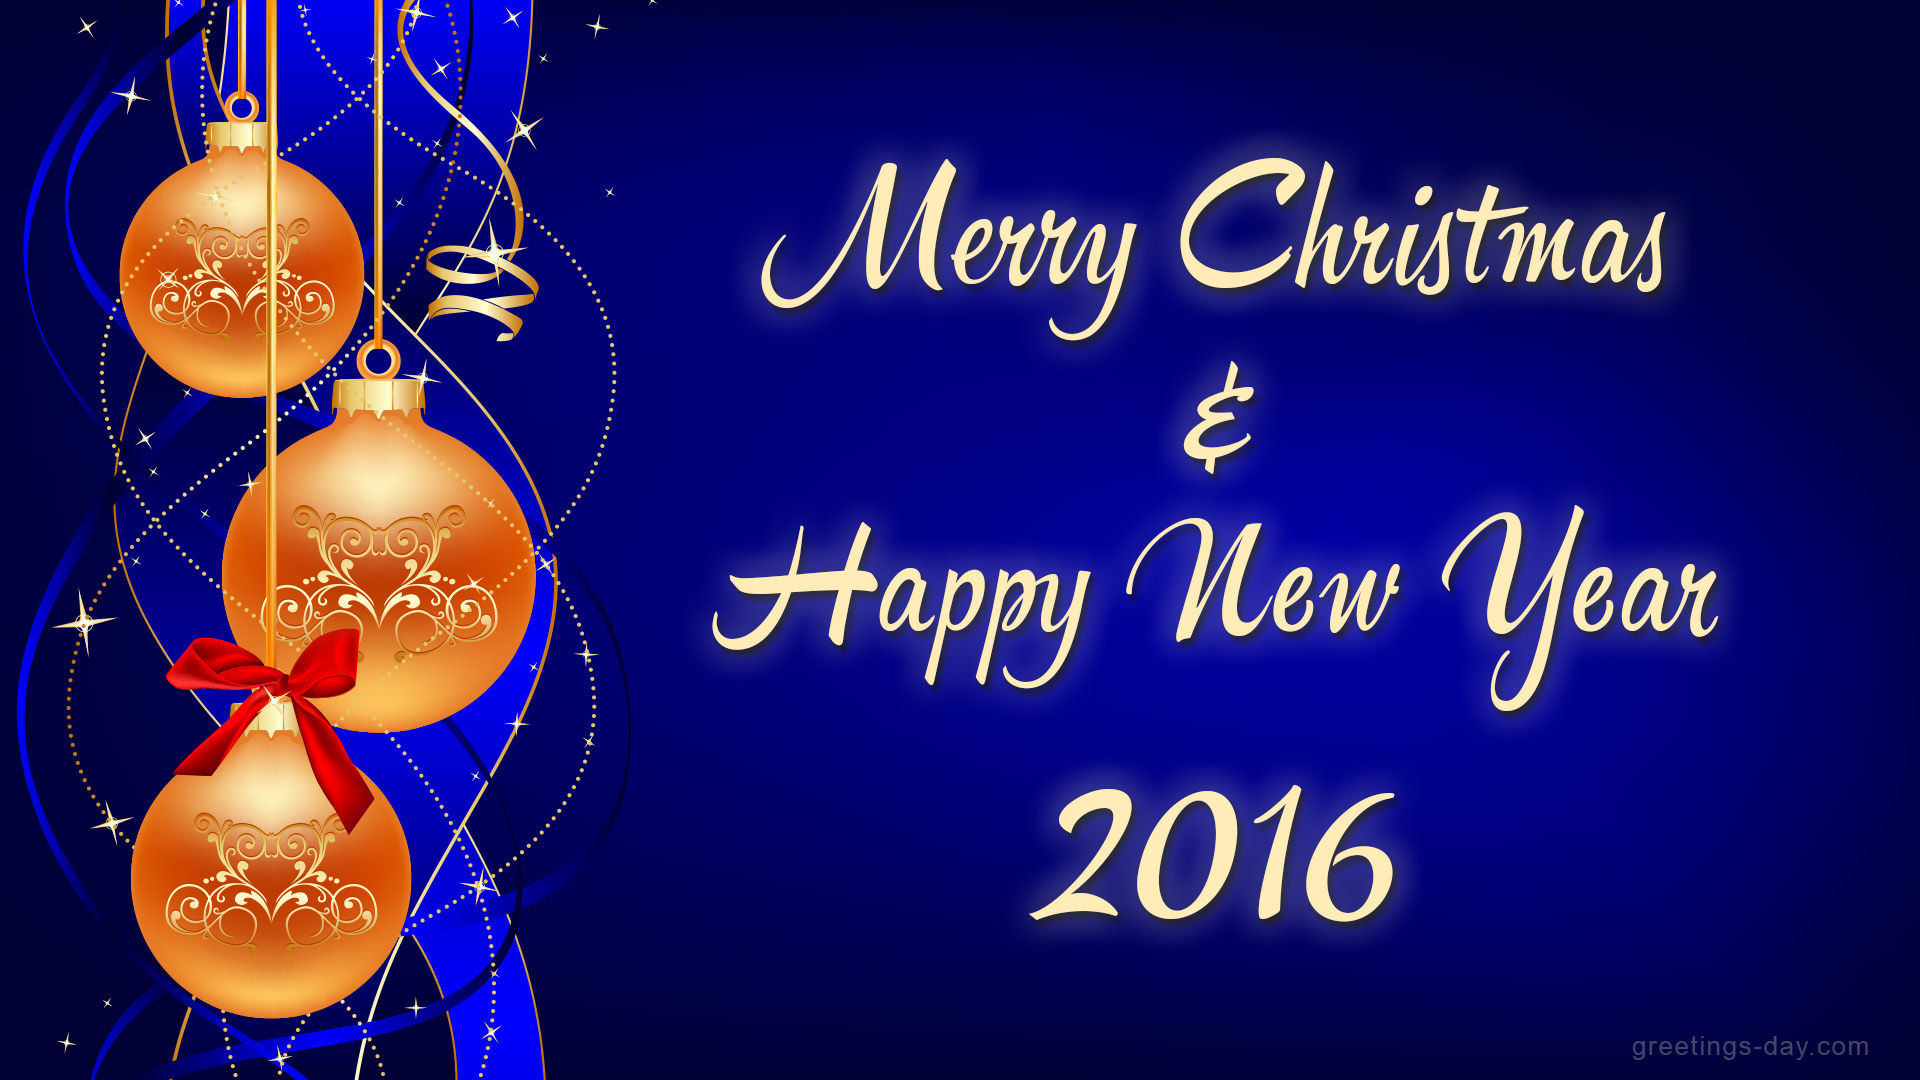 Merry Christmas Wishes To All 2015 2016 Sayings Quotes: Merry Christmas & Happy New Year